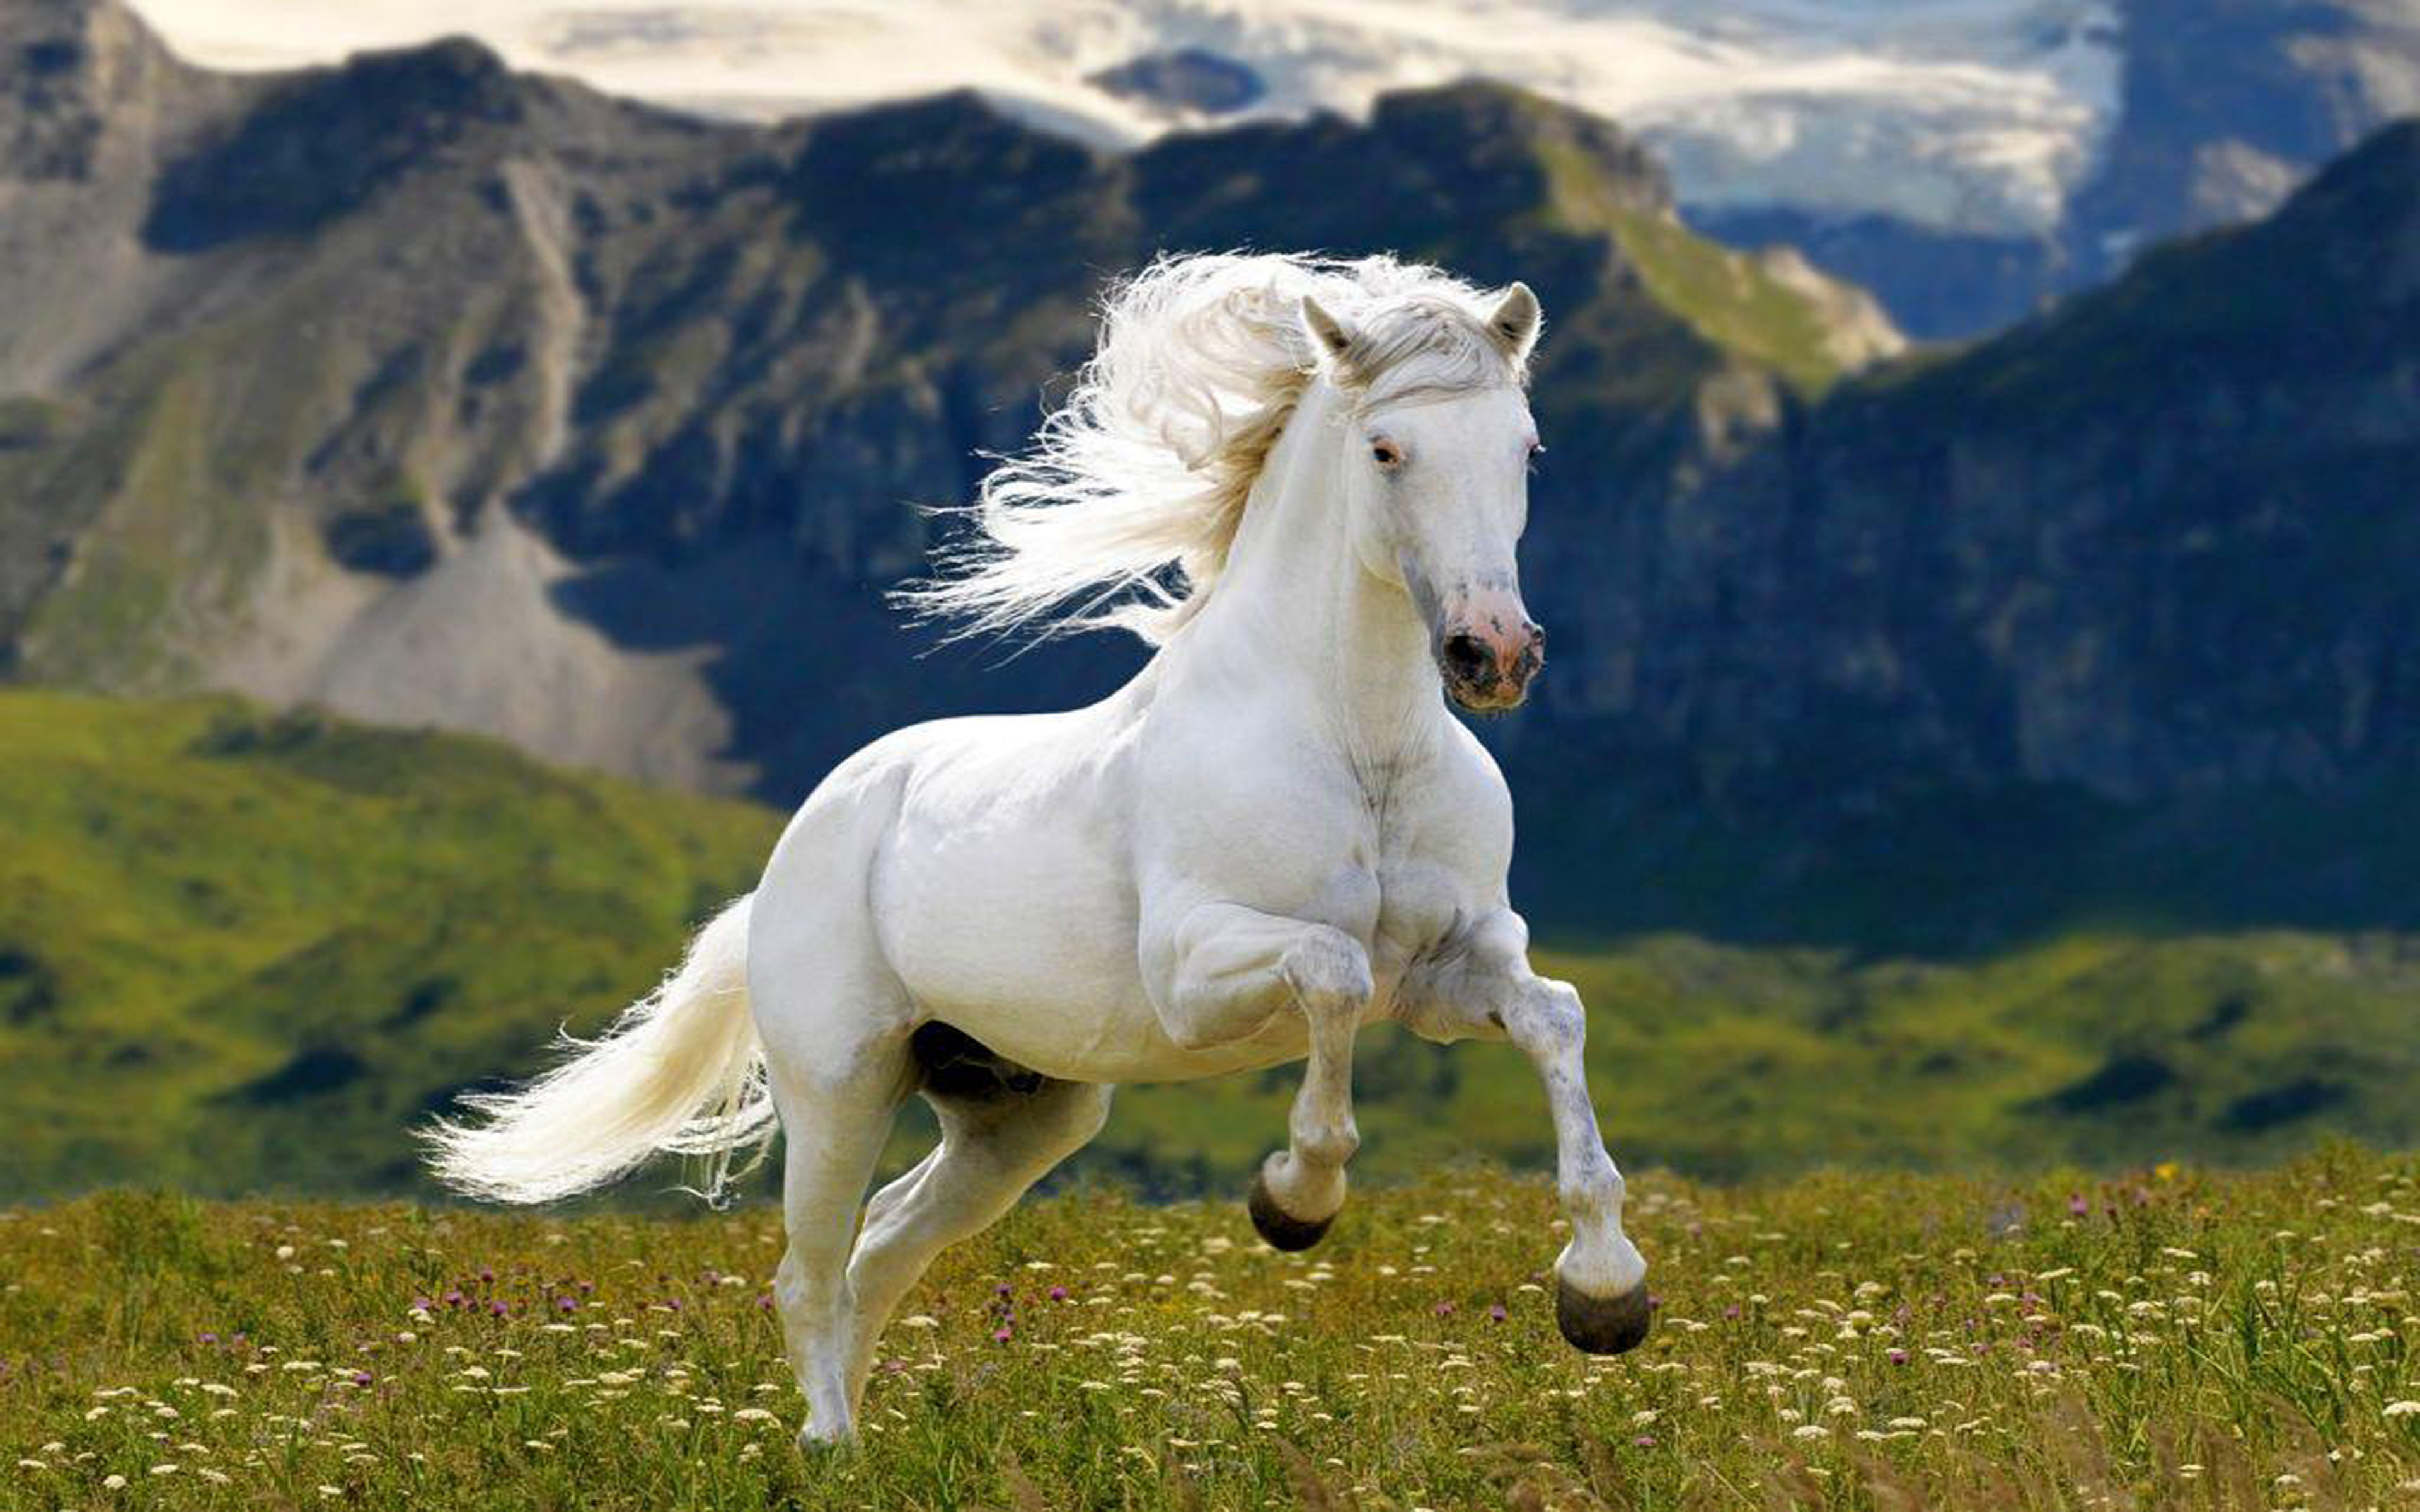 White Horse Meadow Grass Mountains Hd Wallpaper  Wallpapers13com